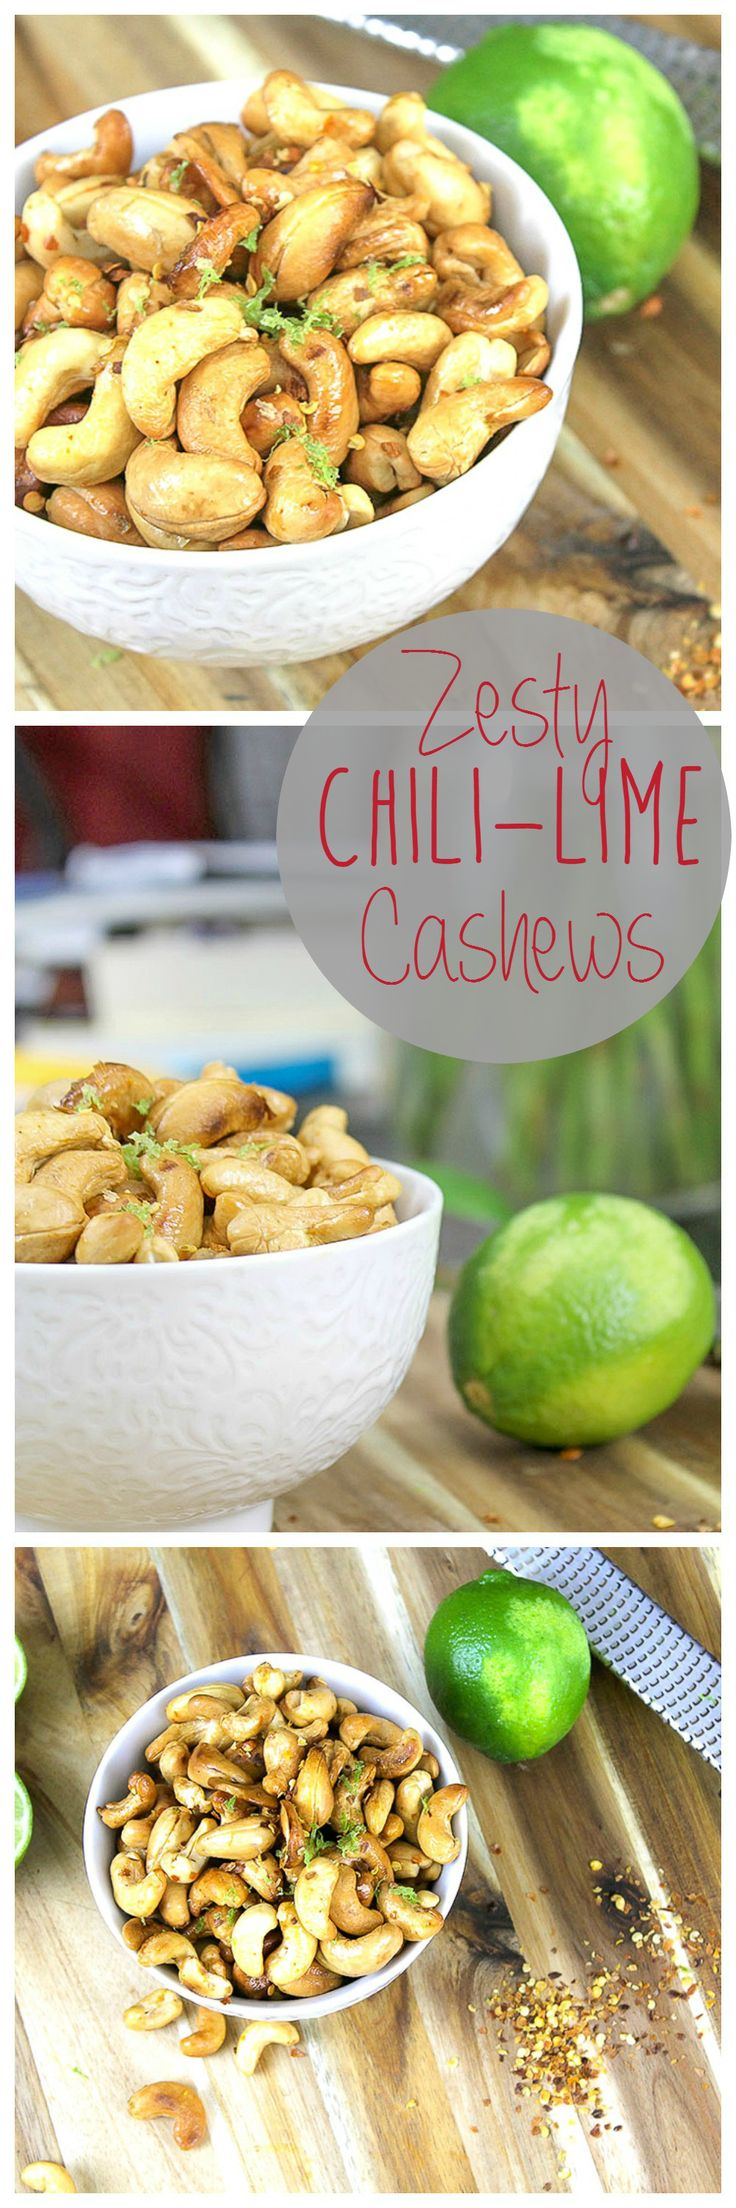 I love snacking on cashews and these are toasted and come with a hint of lime and a kick of heat!